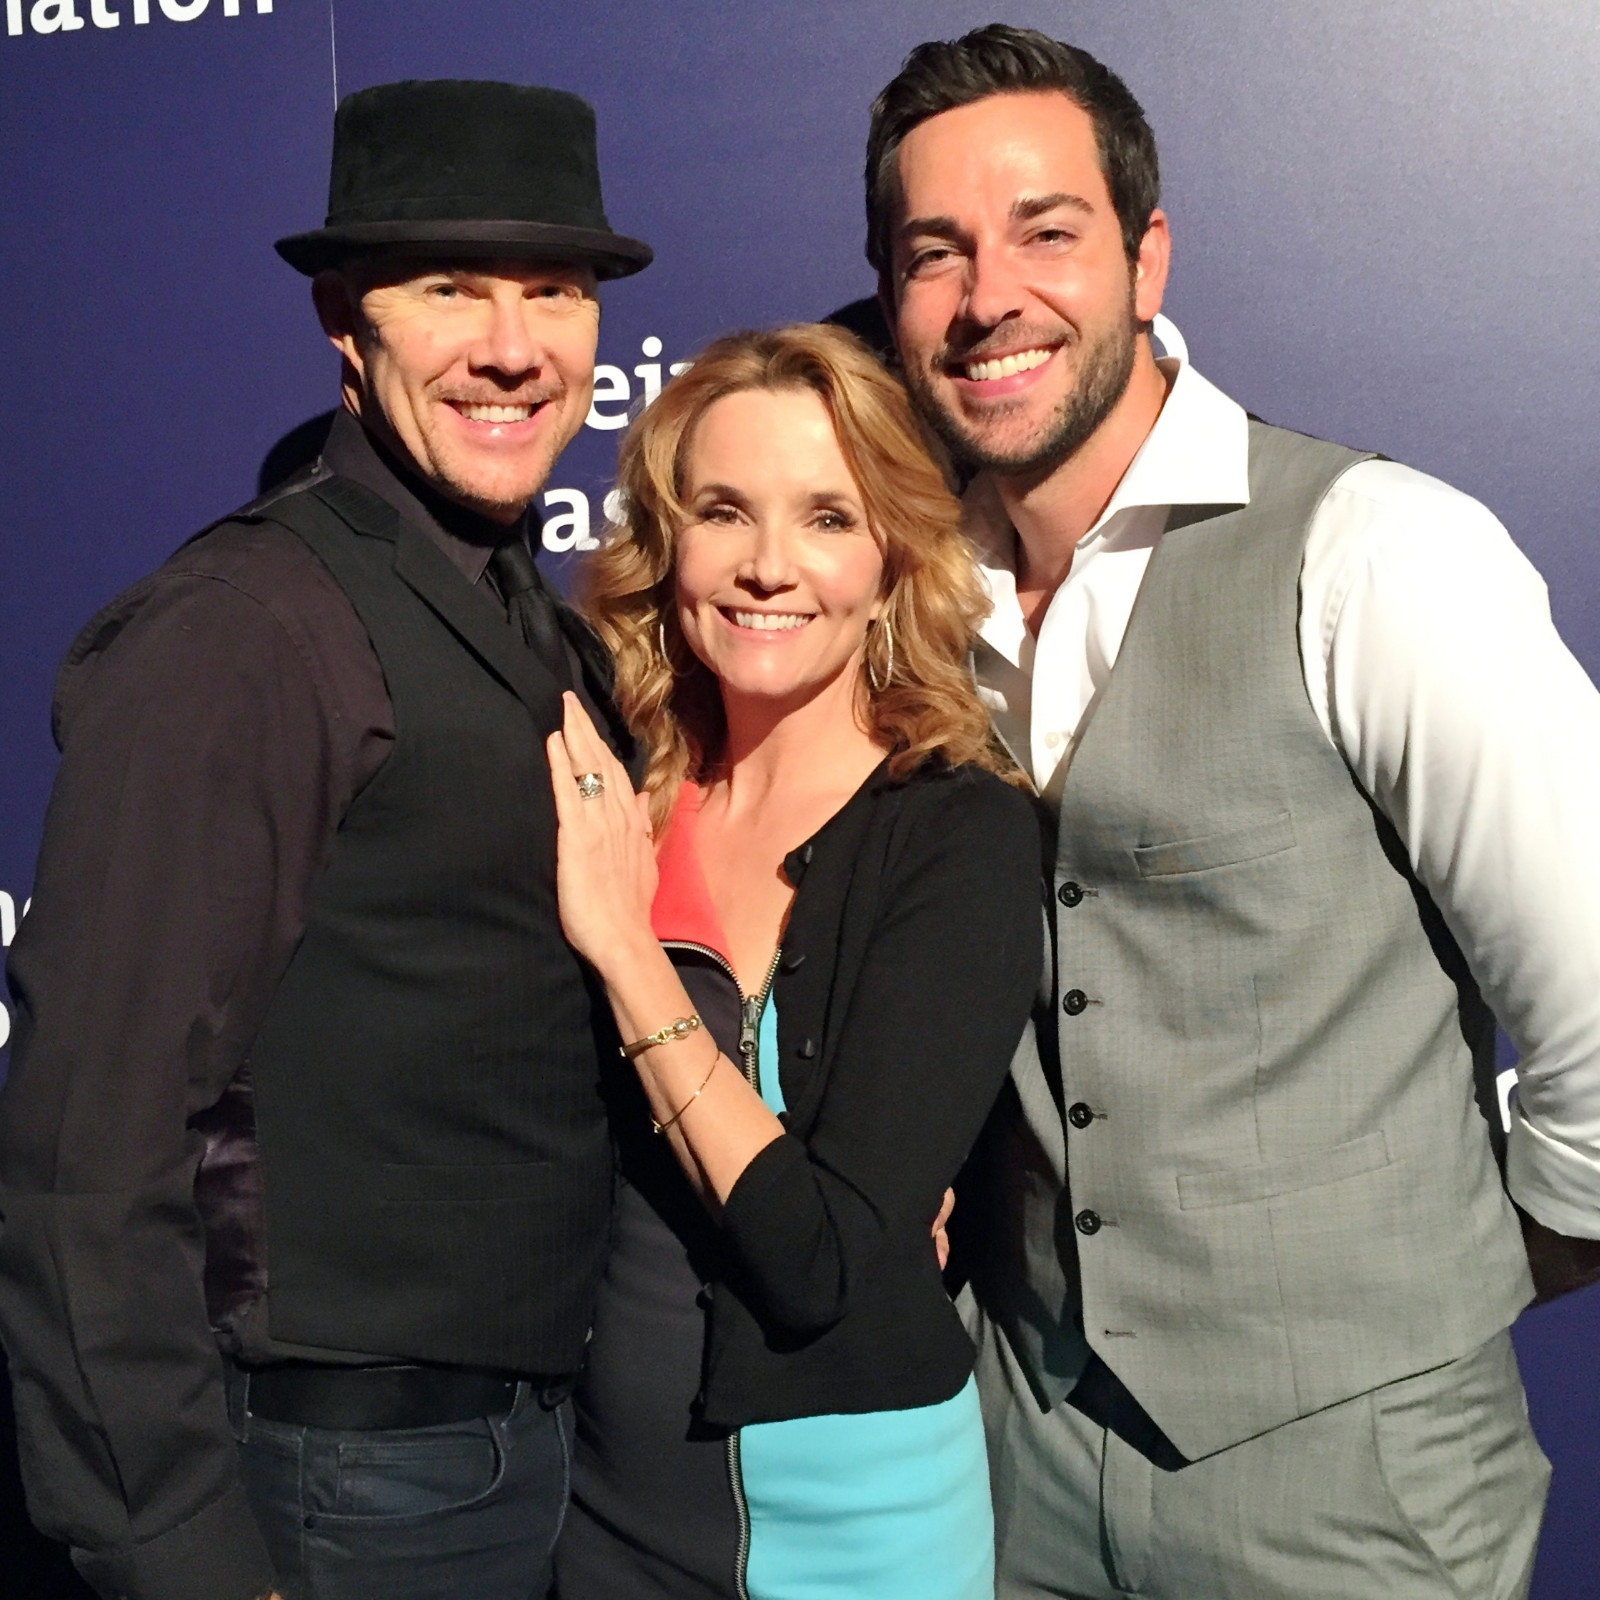 Todd with Lea Thompson and Zachery Levi